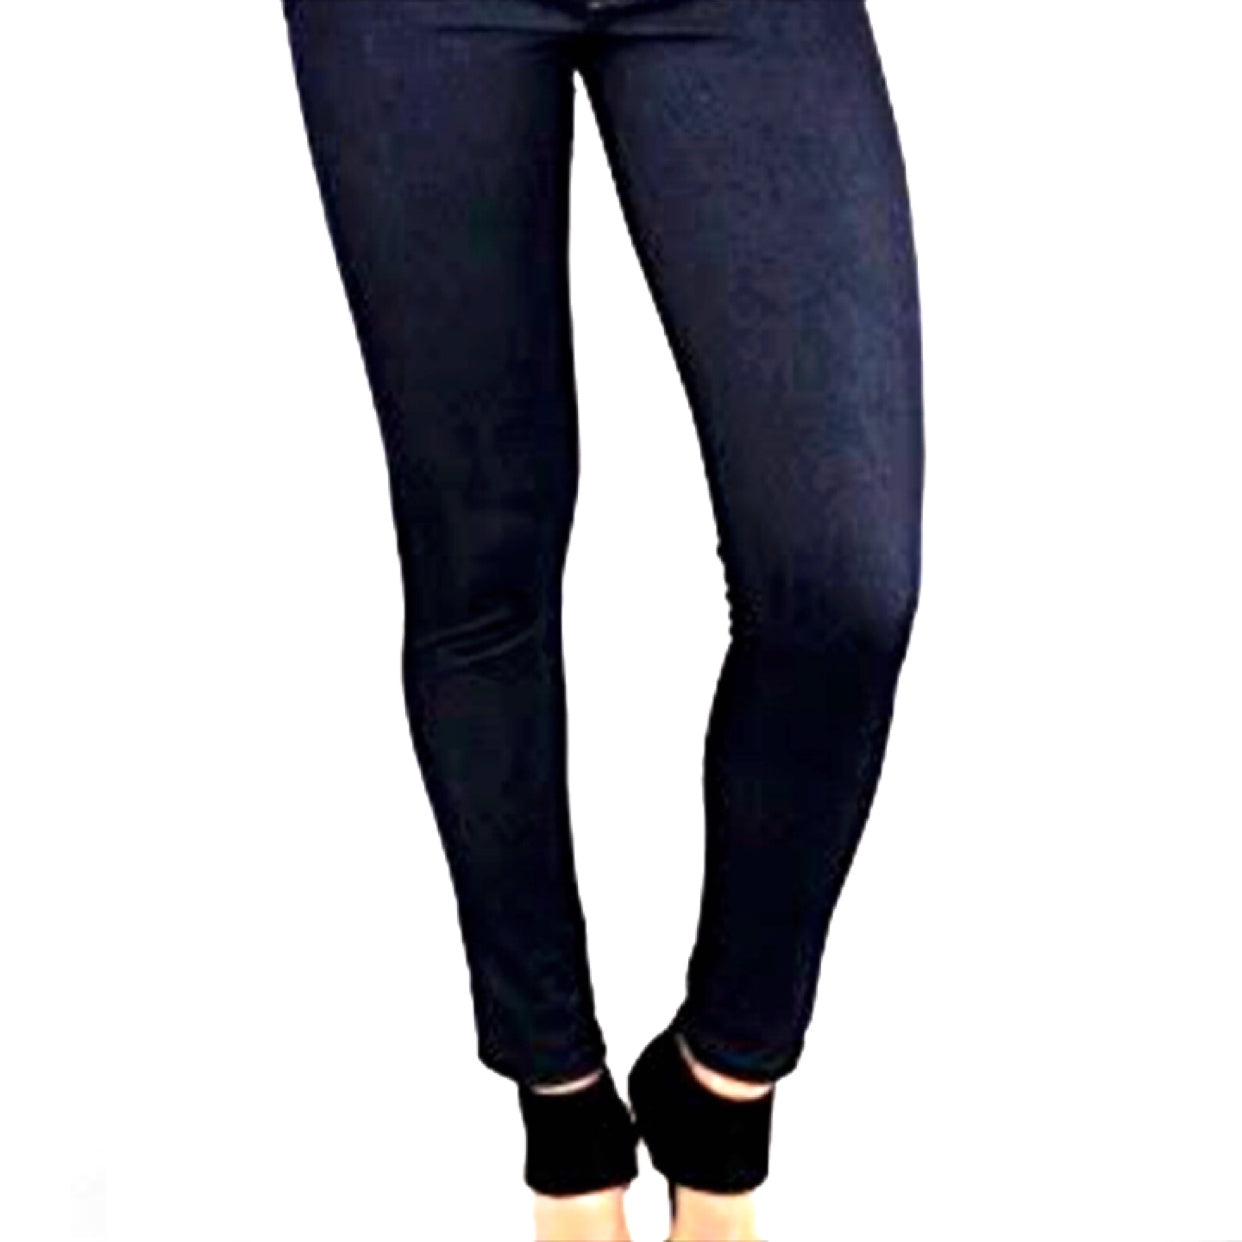 Ladies Stretch Skinny/Tight Jeans